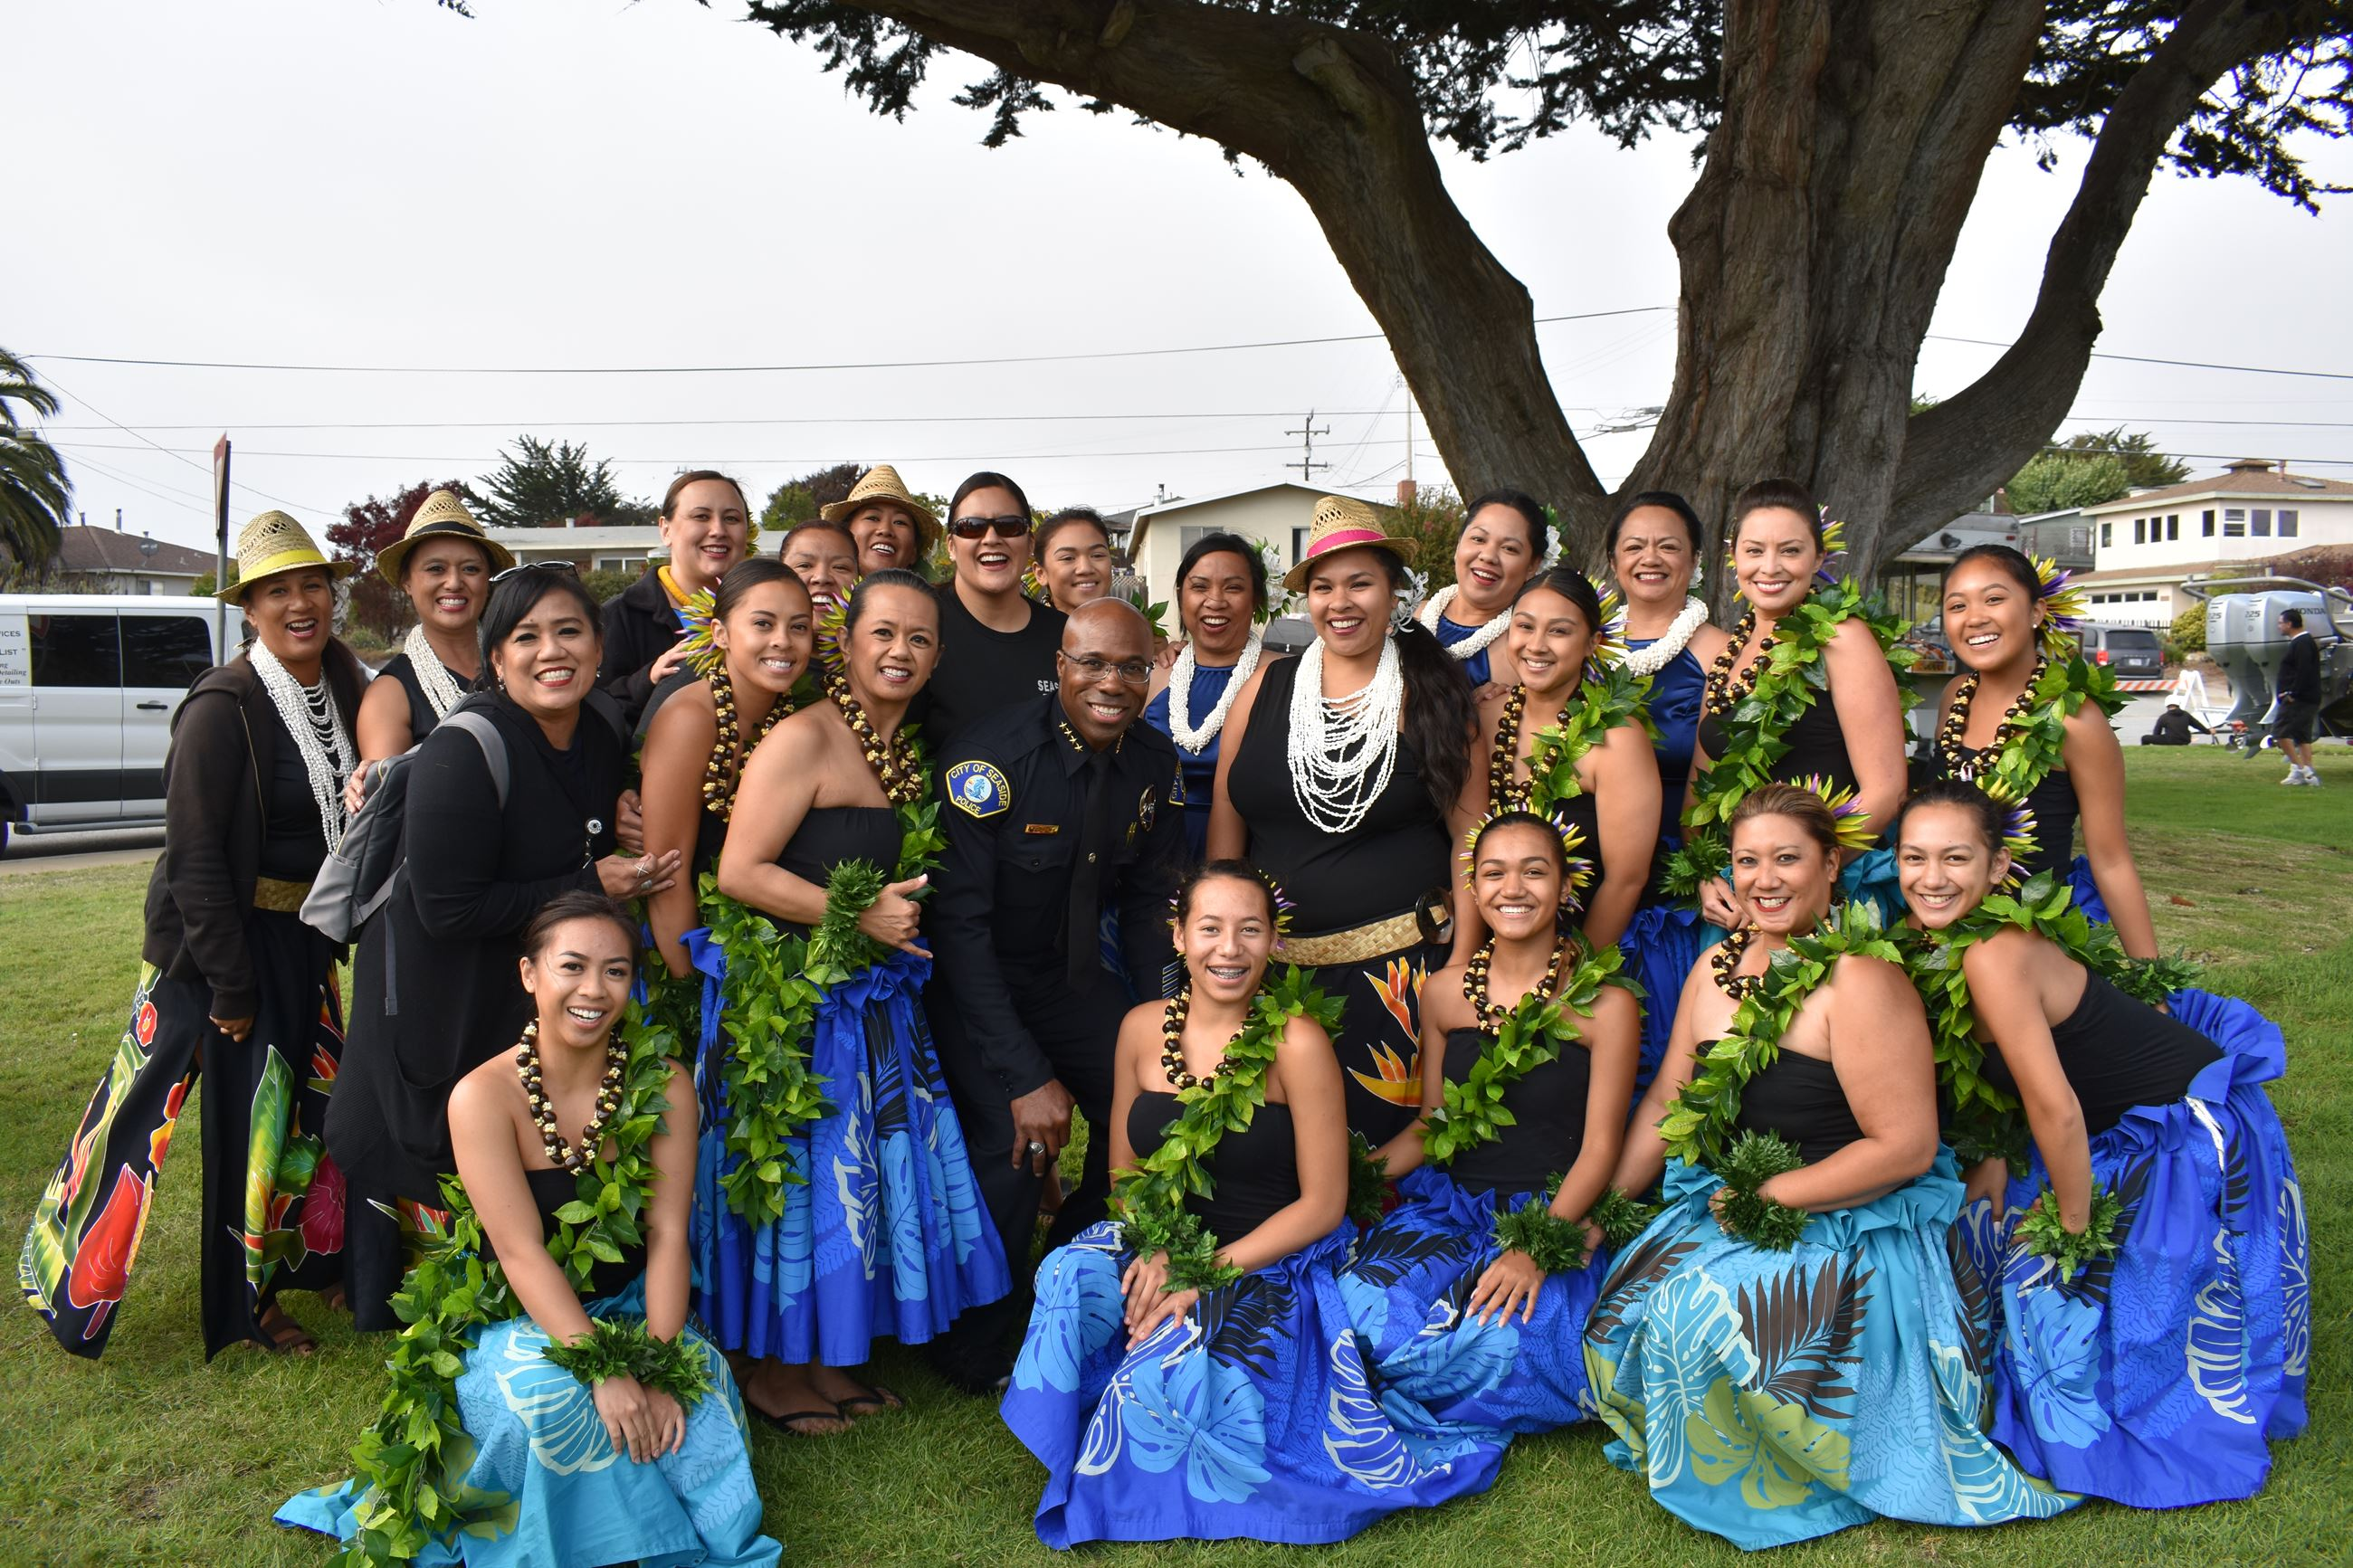 Hula dancers at National Night Out event